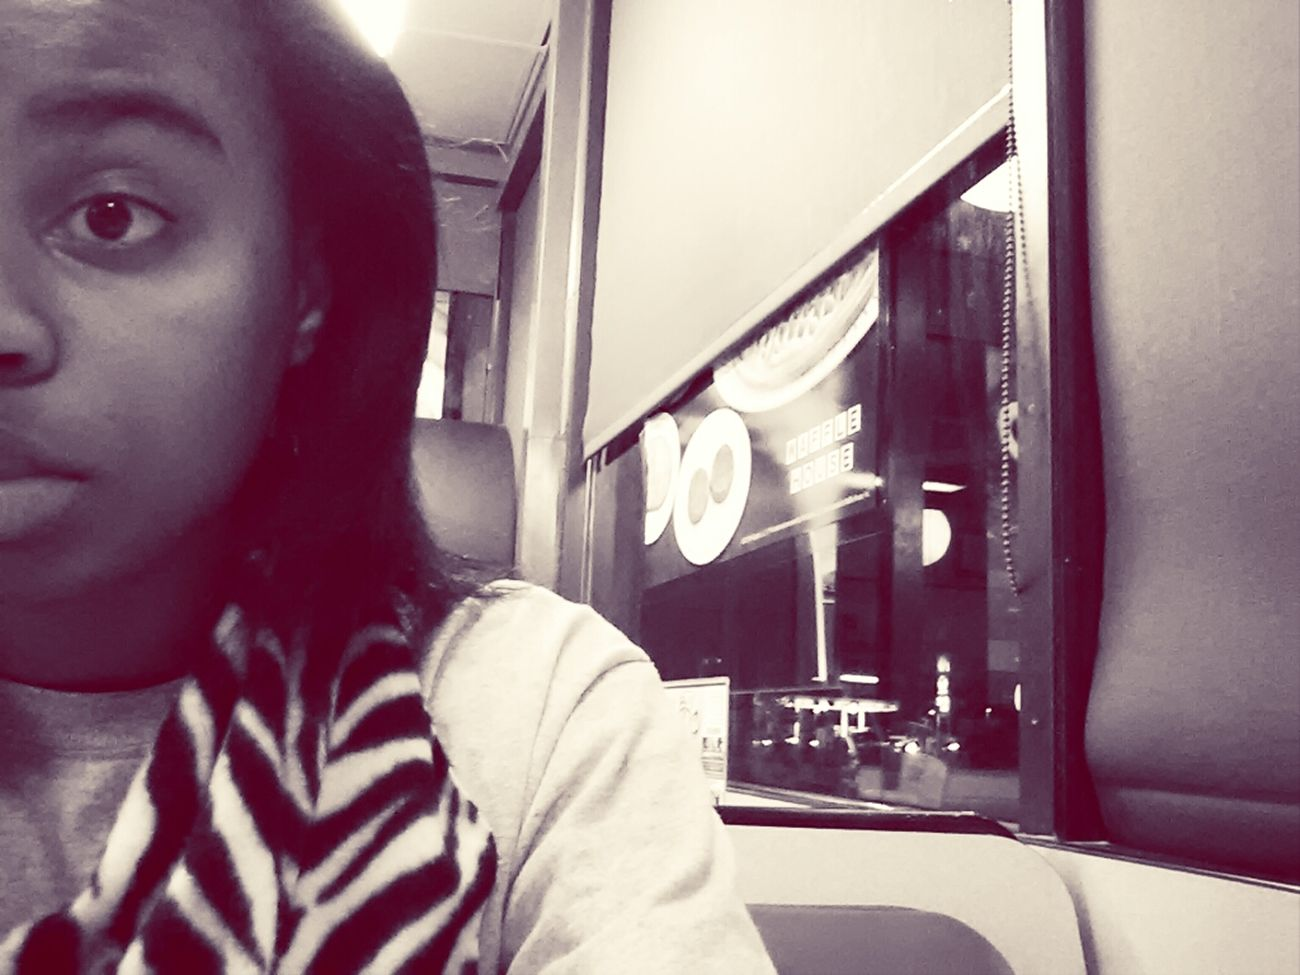 #wafflehouse #breakfast #dinner #eat #food